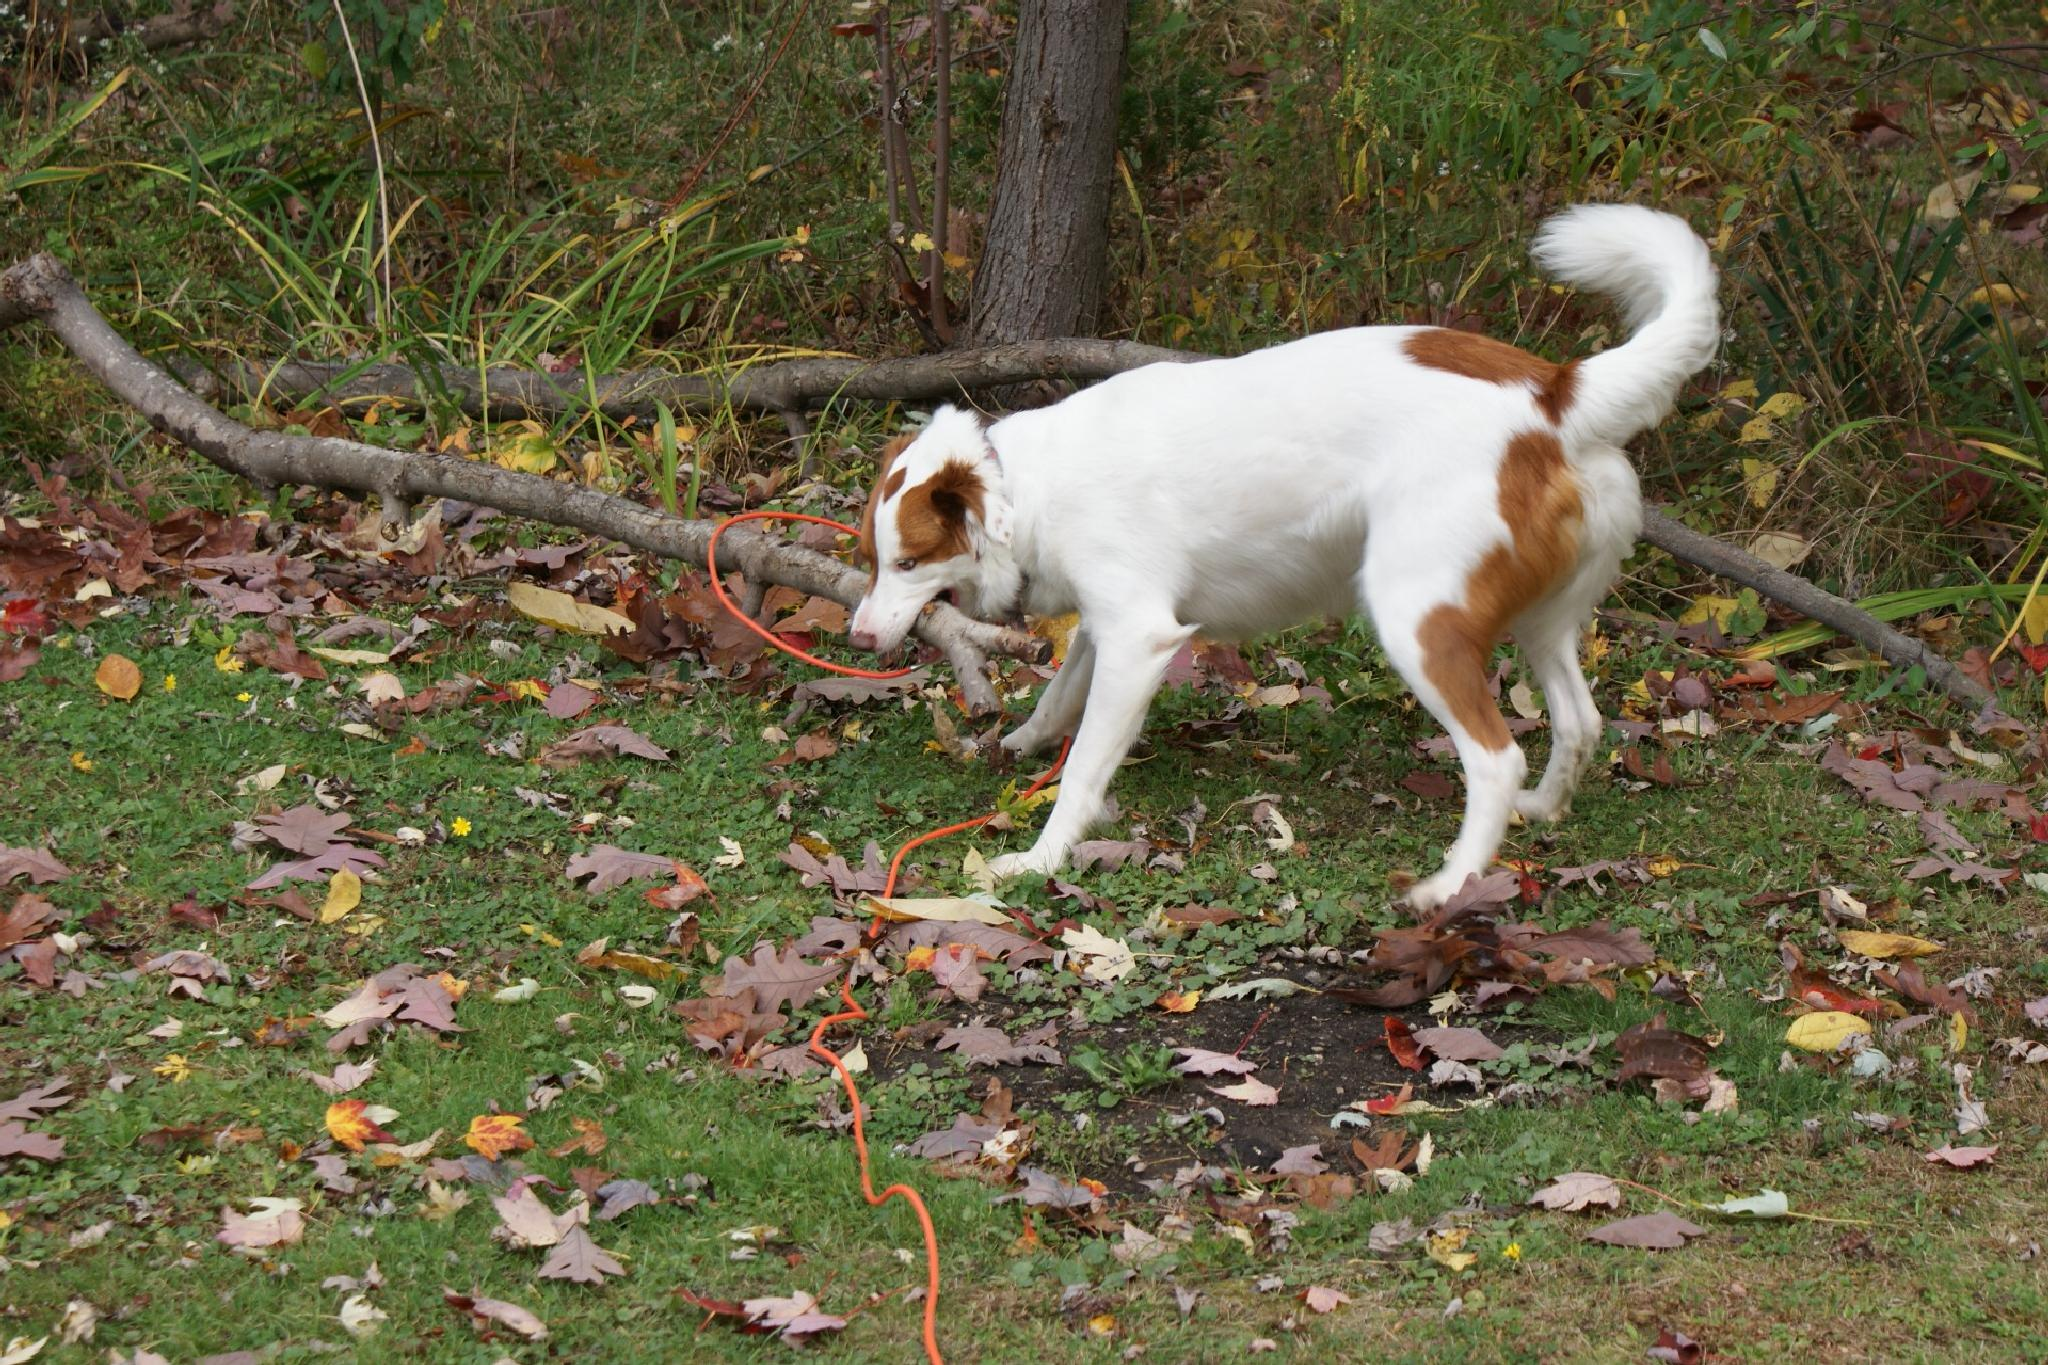 My Dog and Her Stick by Darlene Pavek